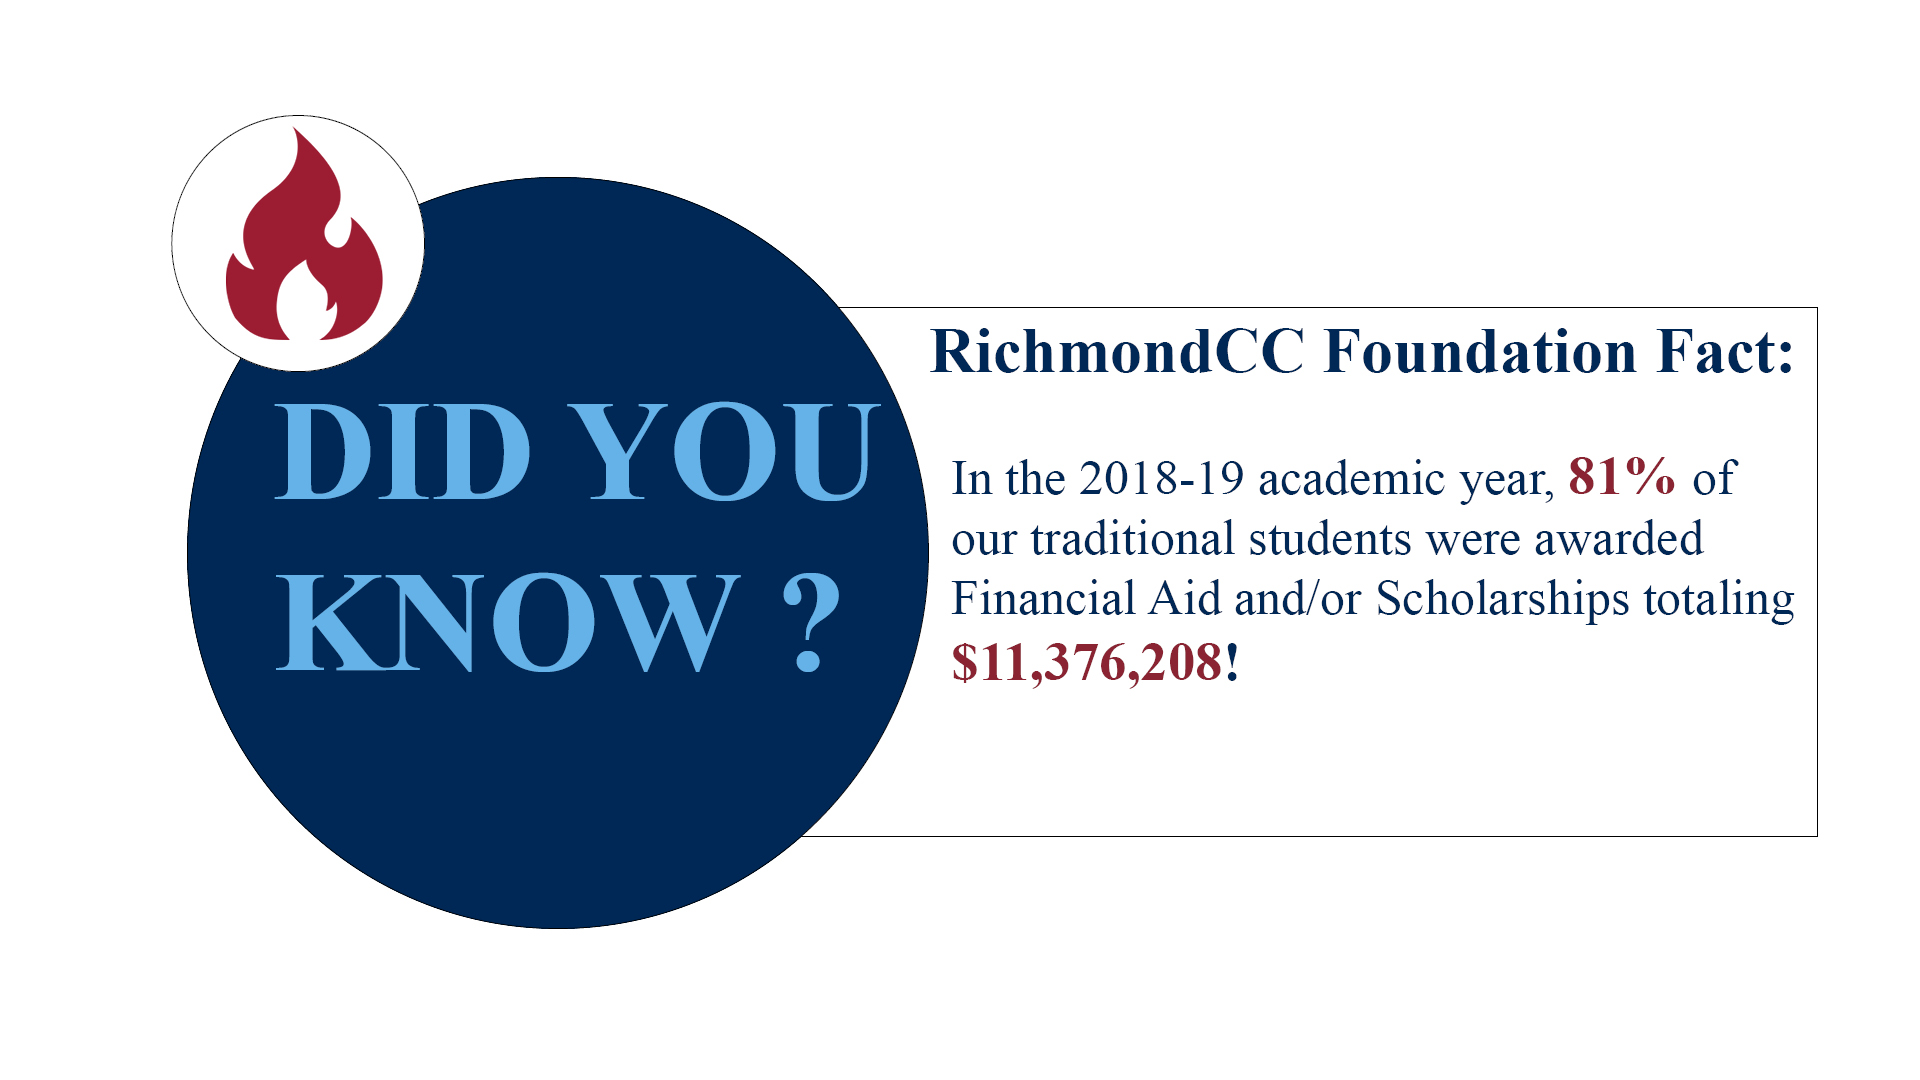 Richmond Community College Foundation Facts